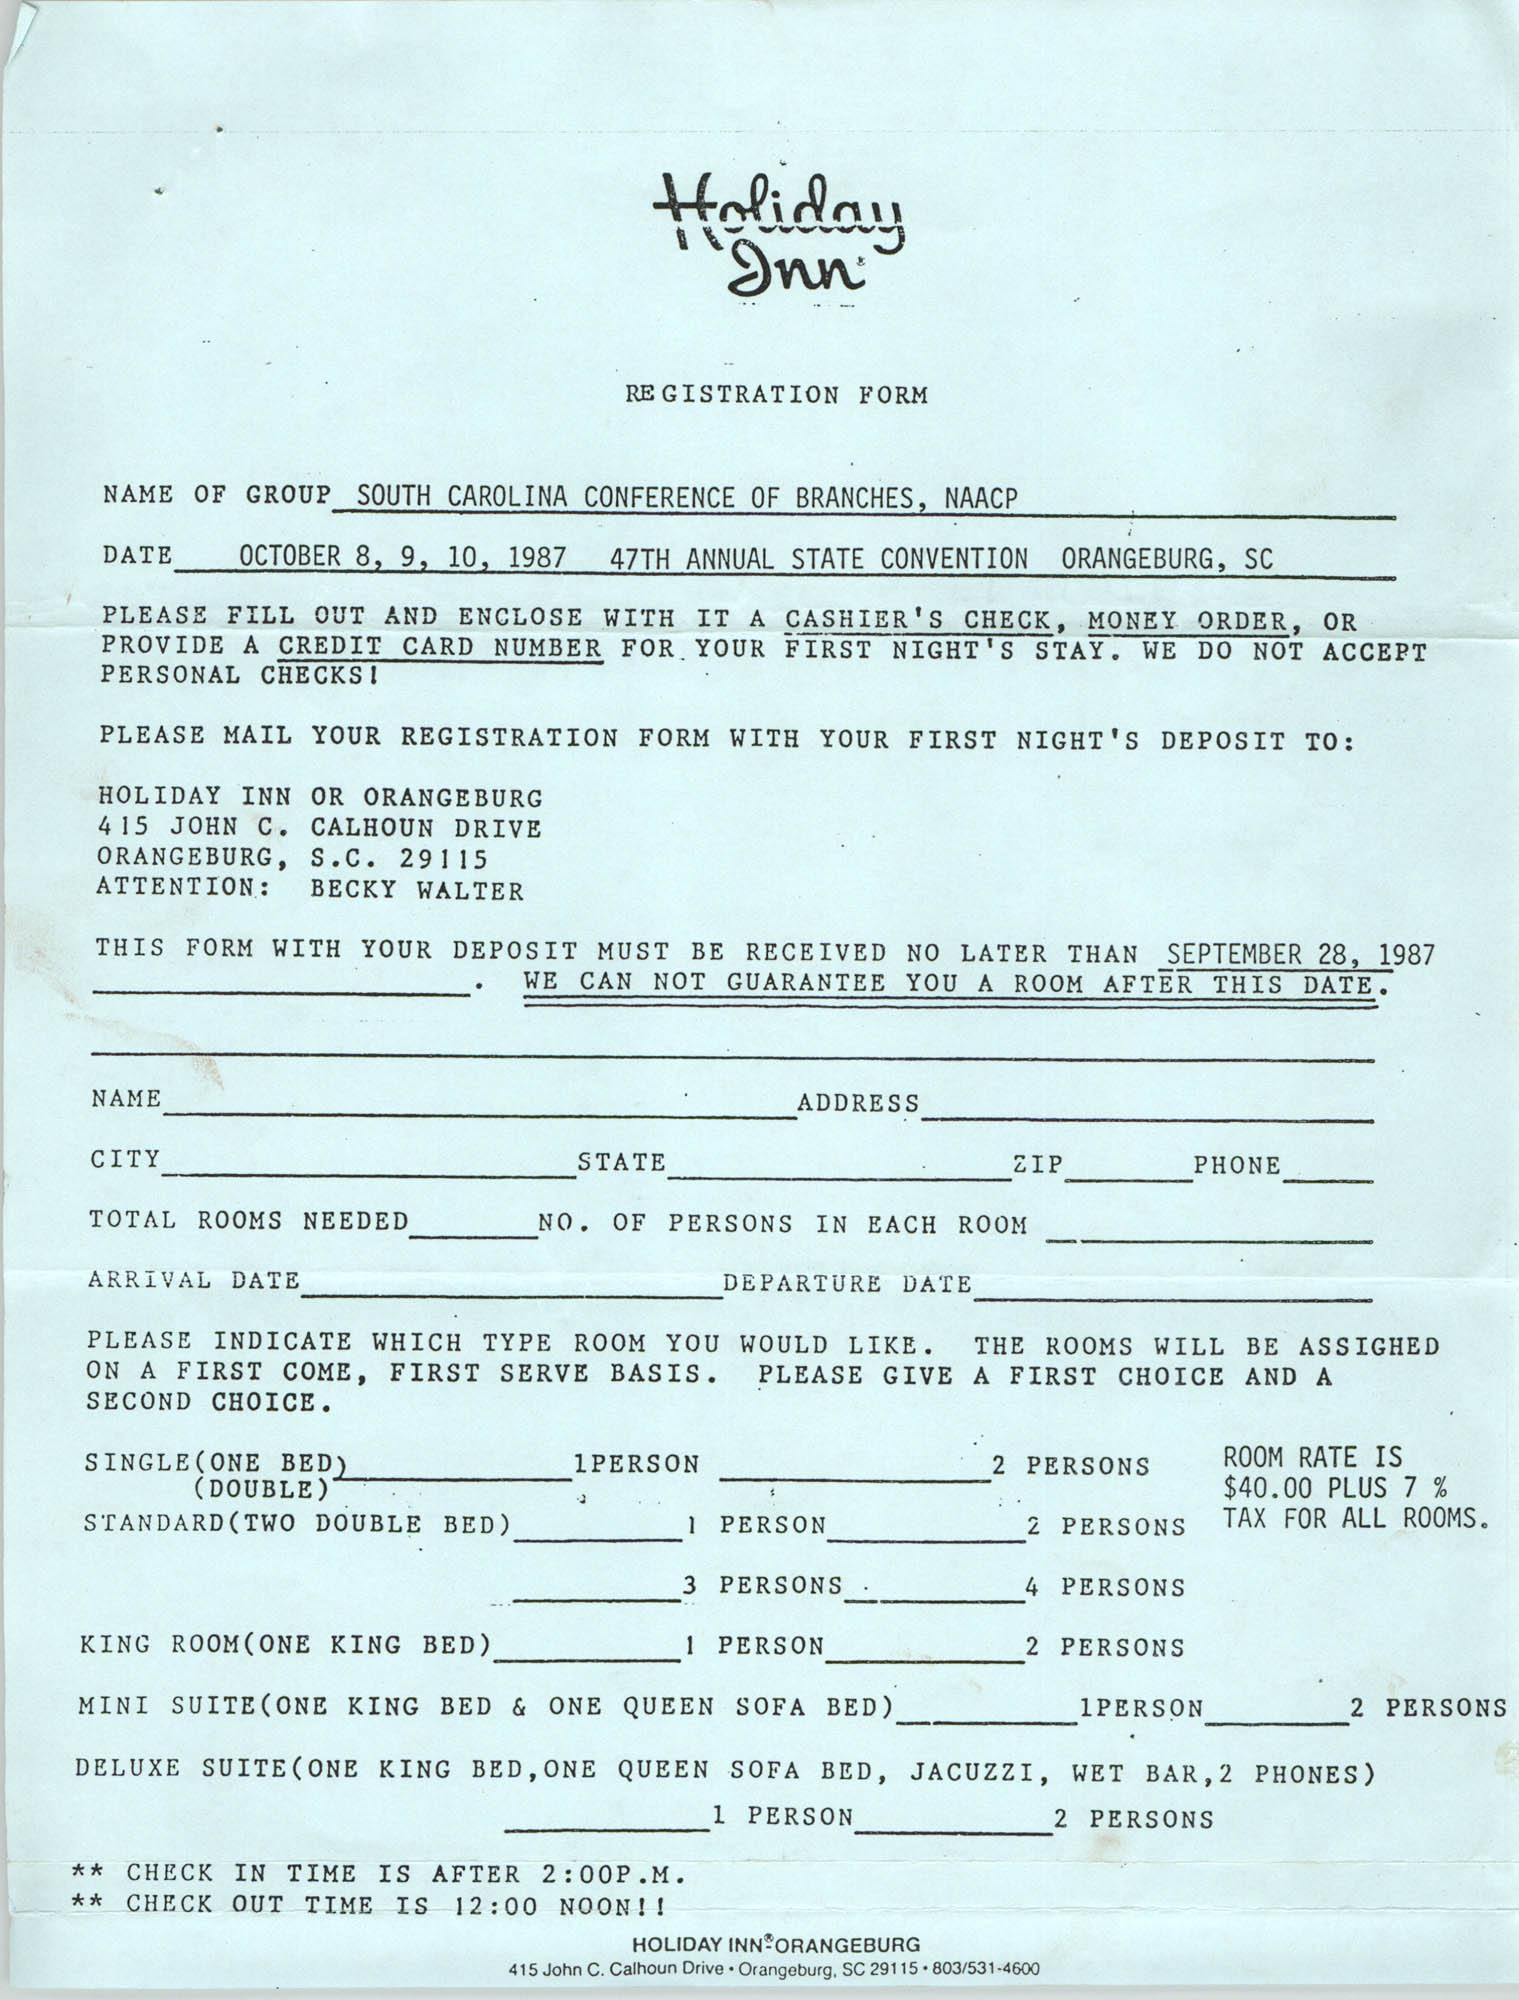 Holiday Inn, Registration Form for the South Carolina Conference of Branches NAACP, 47th Annual State Convention